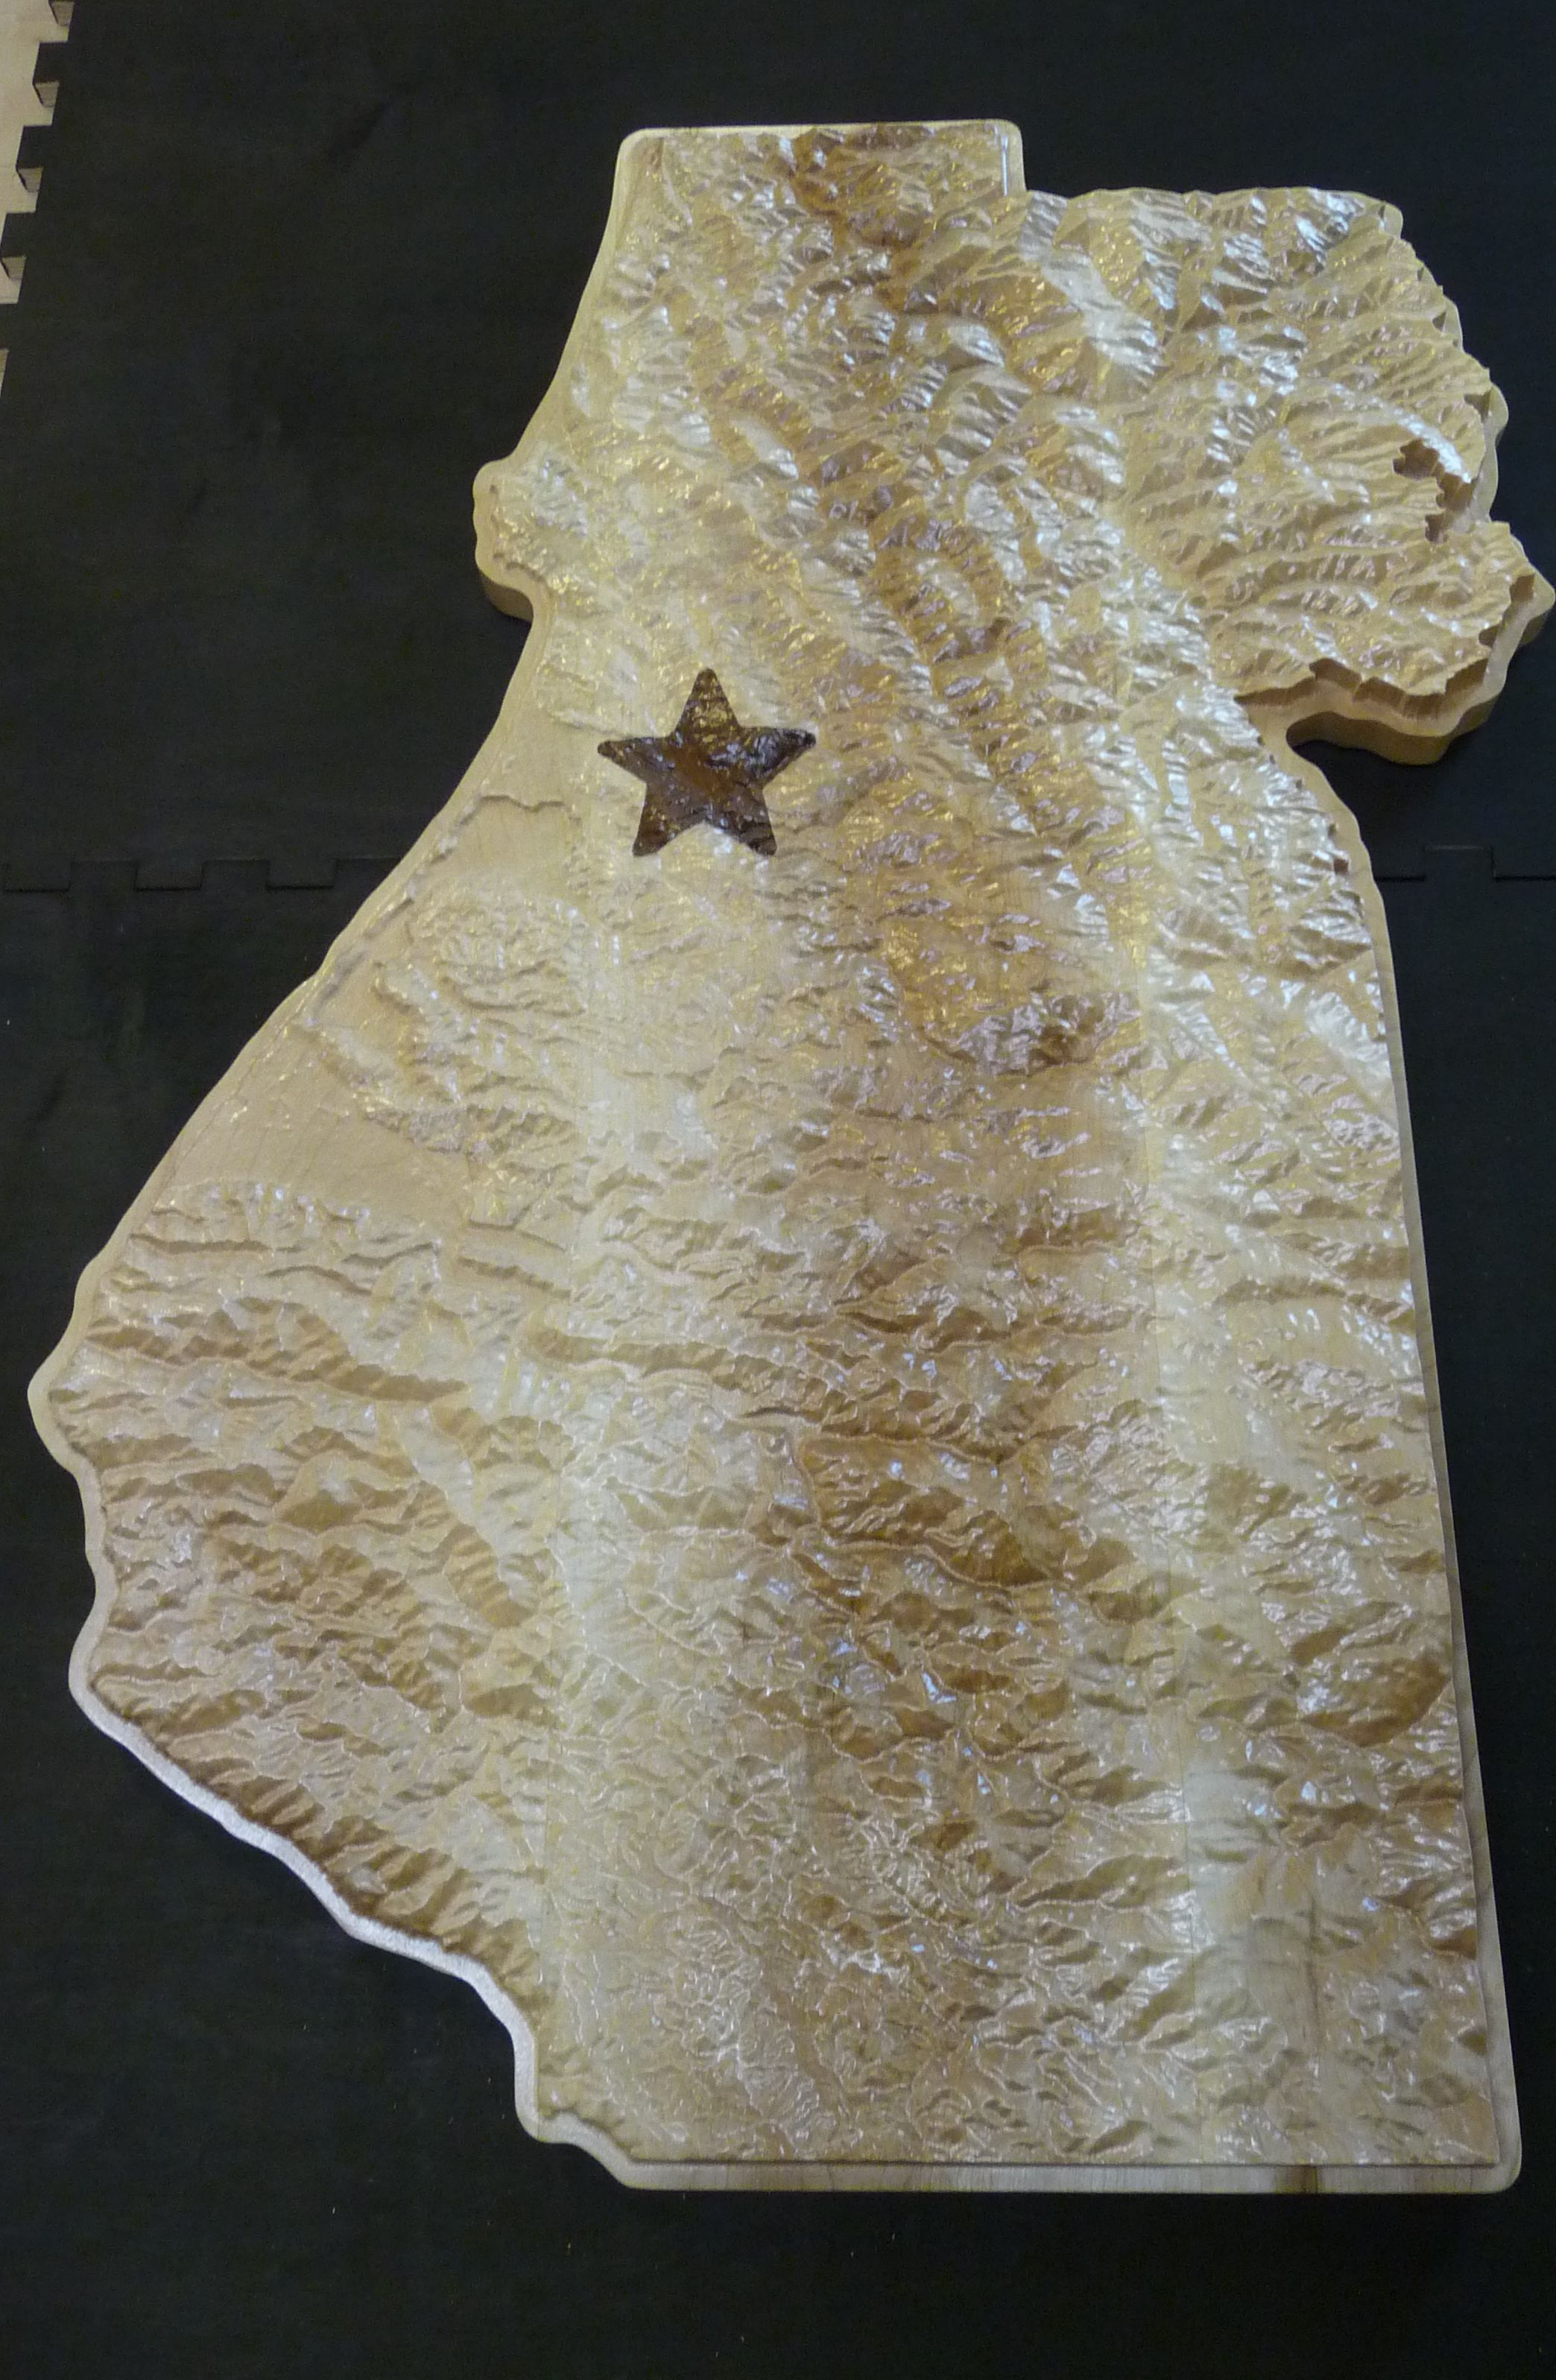 Maple Humboldt County Topographical Map with Location Star Icon